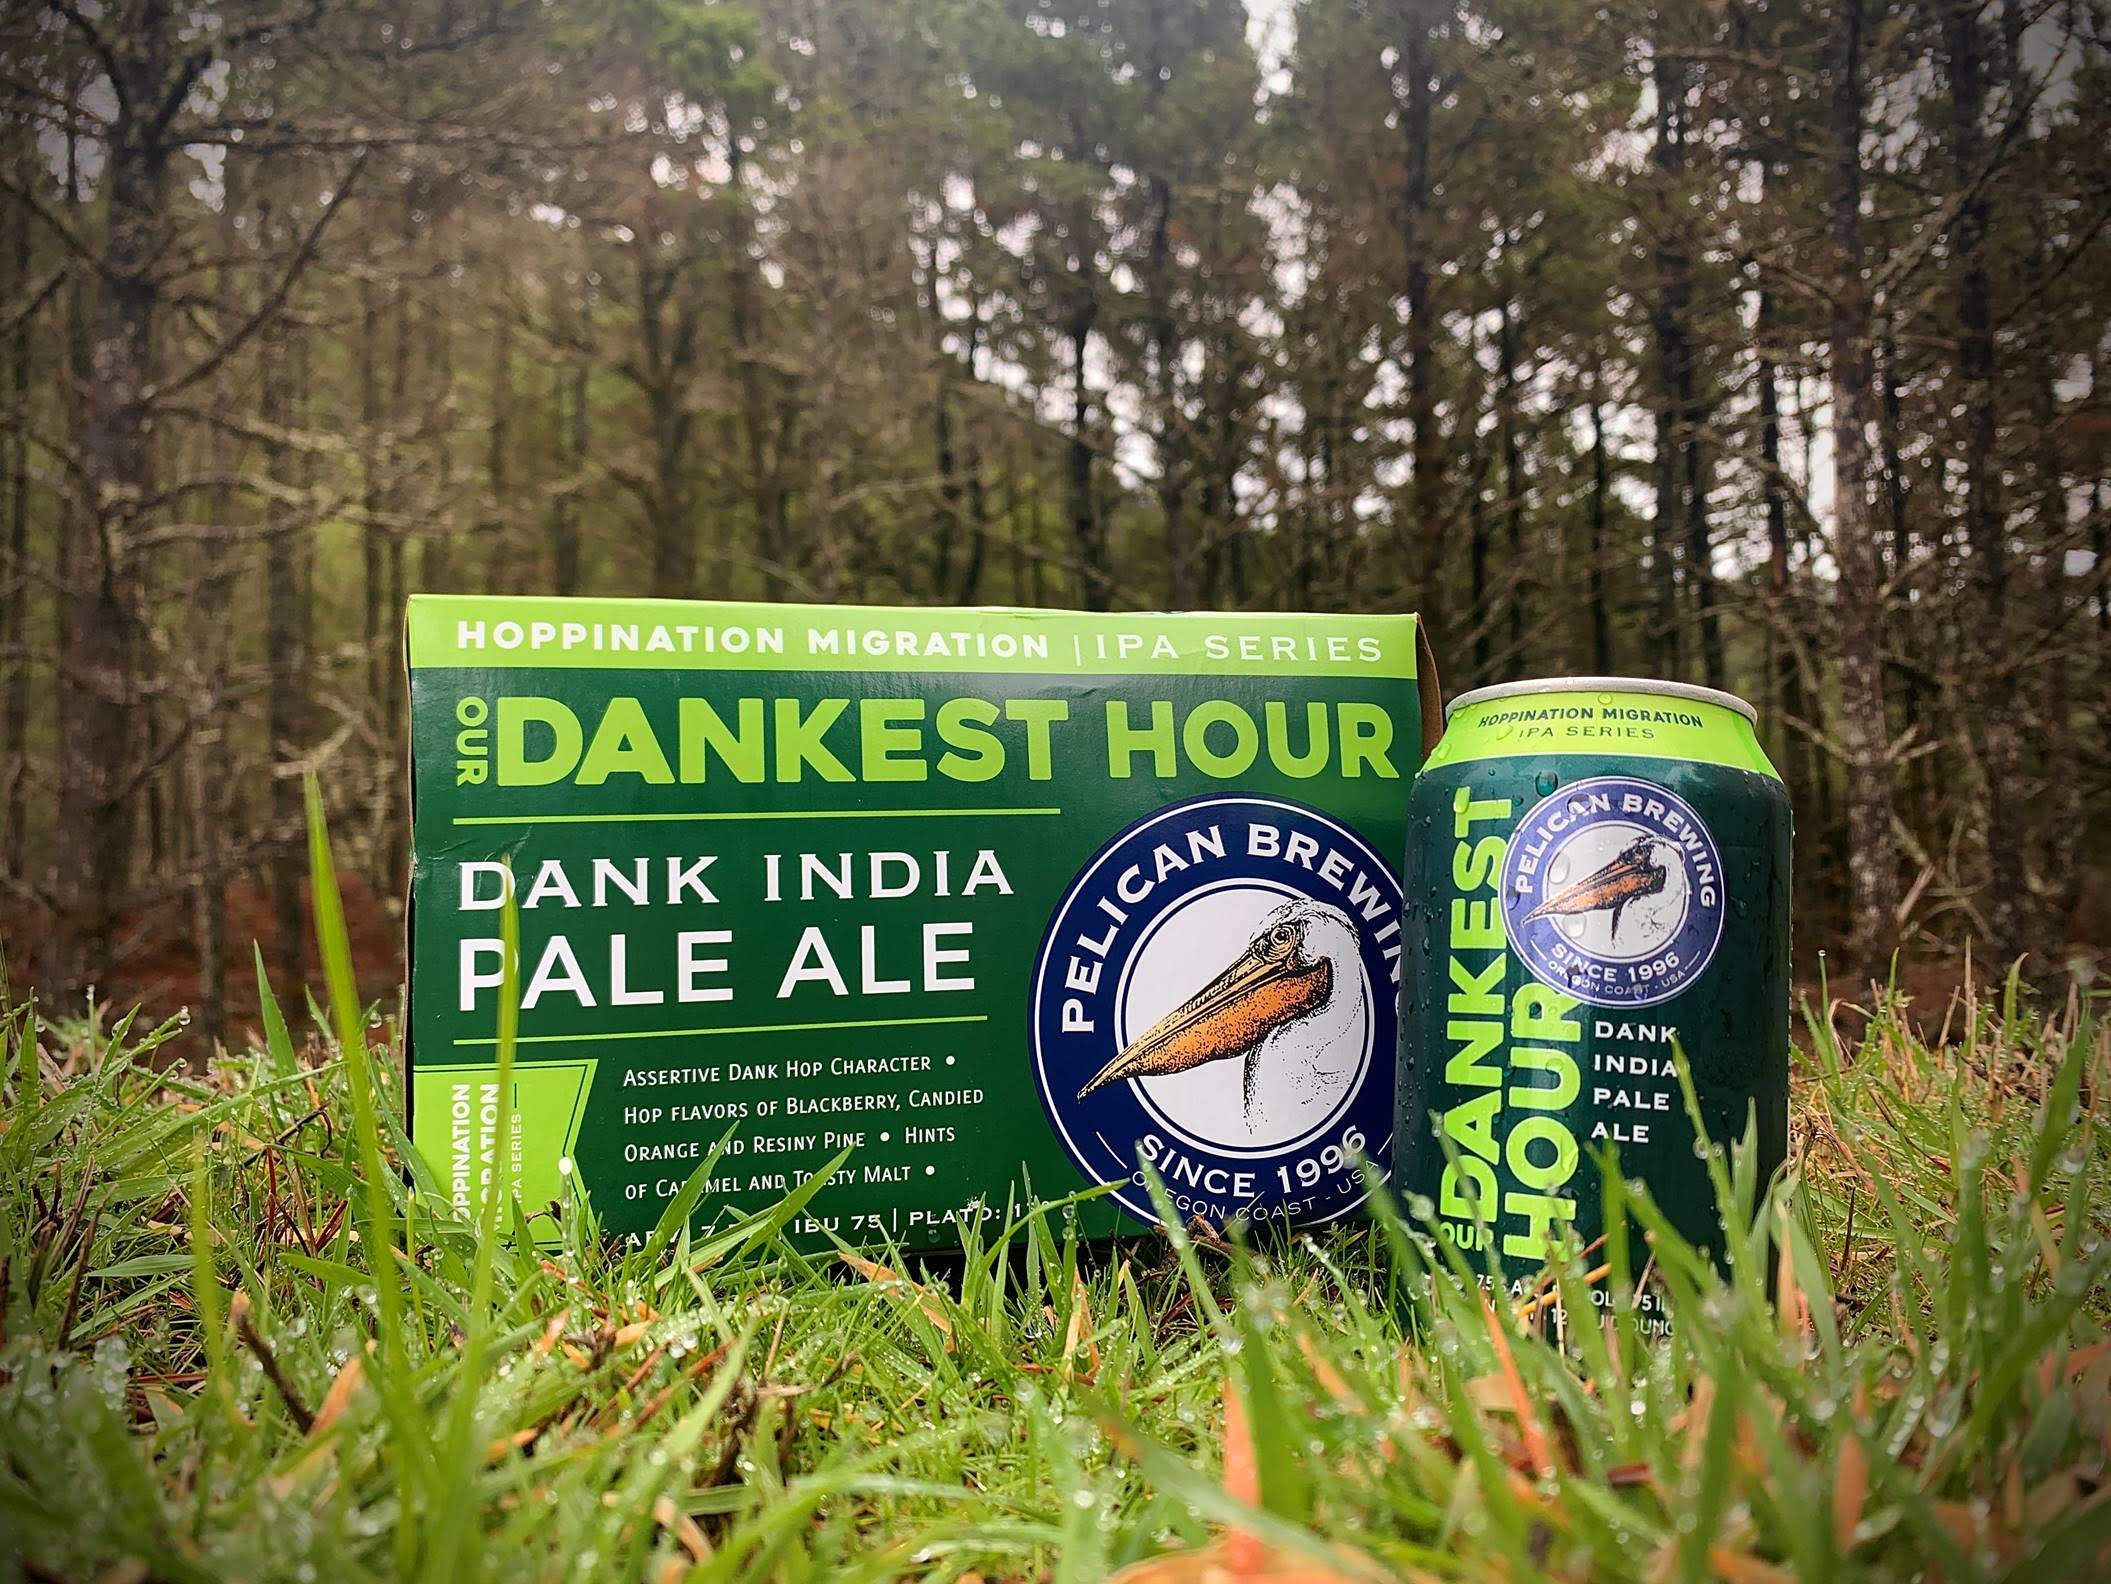 image of Our Dankest Hour Dank India Pale Ale courtesy of Pelican Brewing